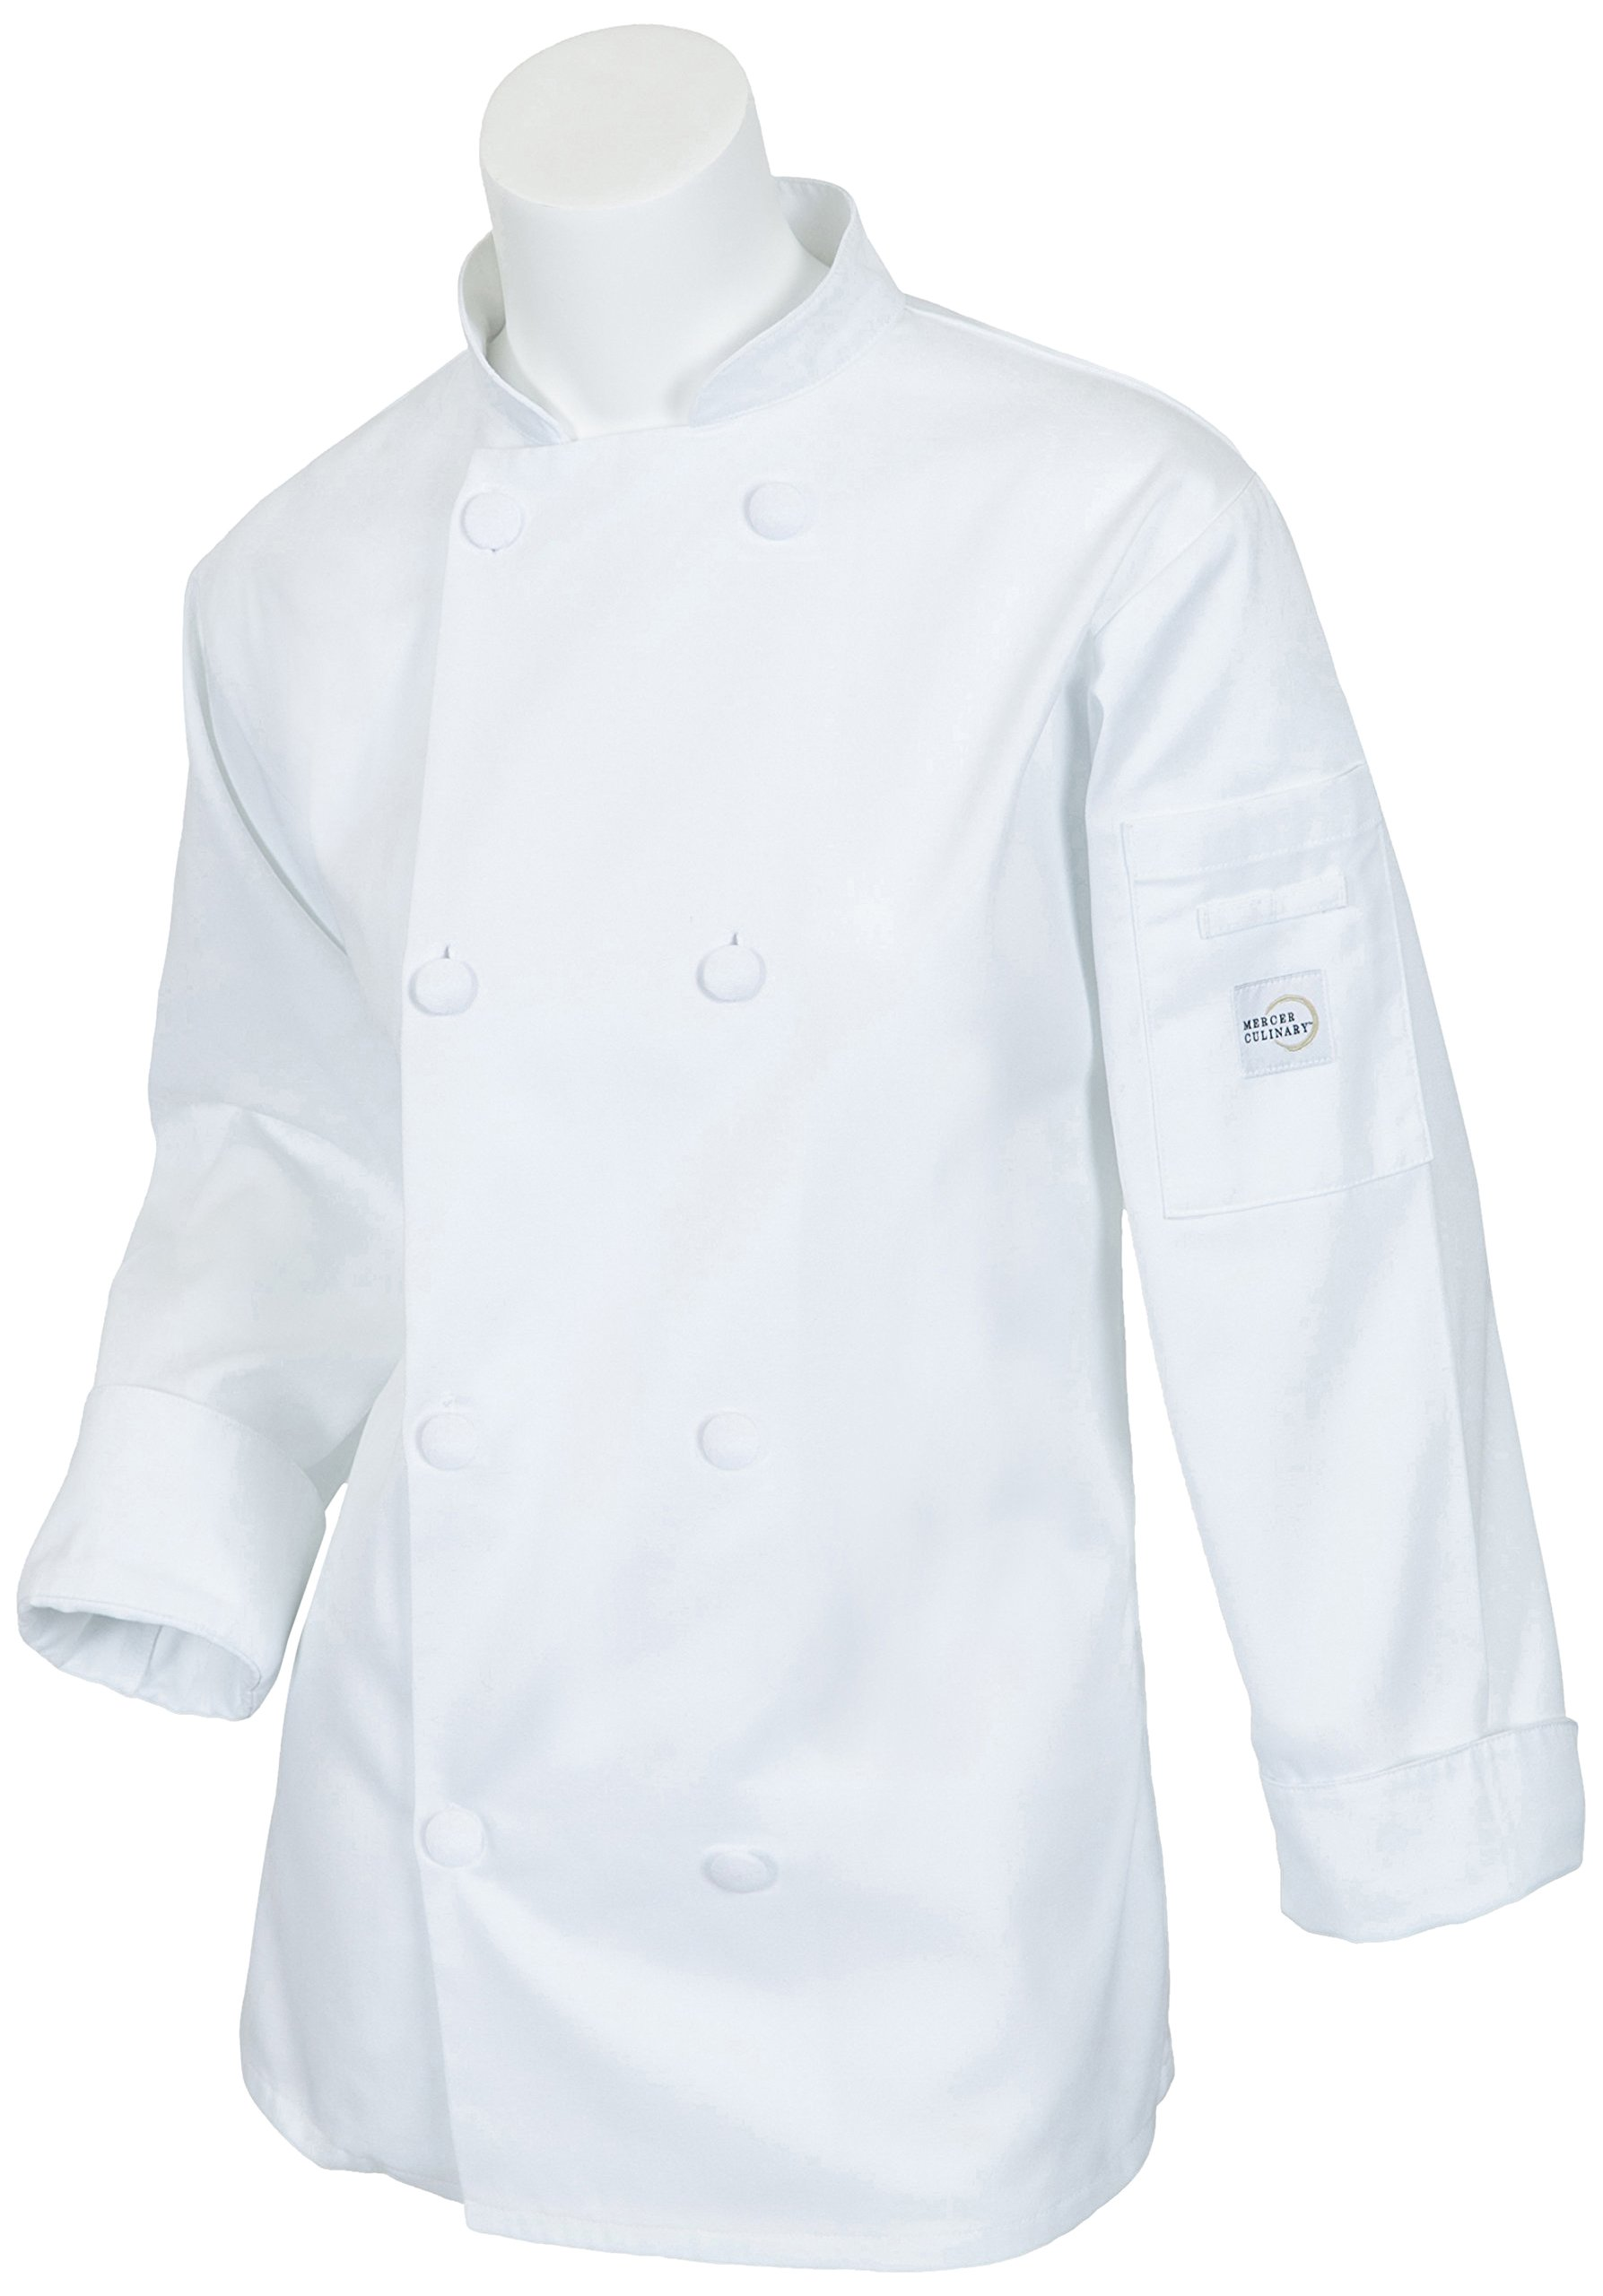 Mercer Culinary Millennia Women's Cook Jacket with Cloth Knot Buttons, Large, White by Mercer Culinary